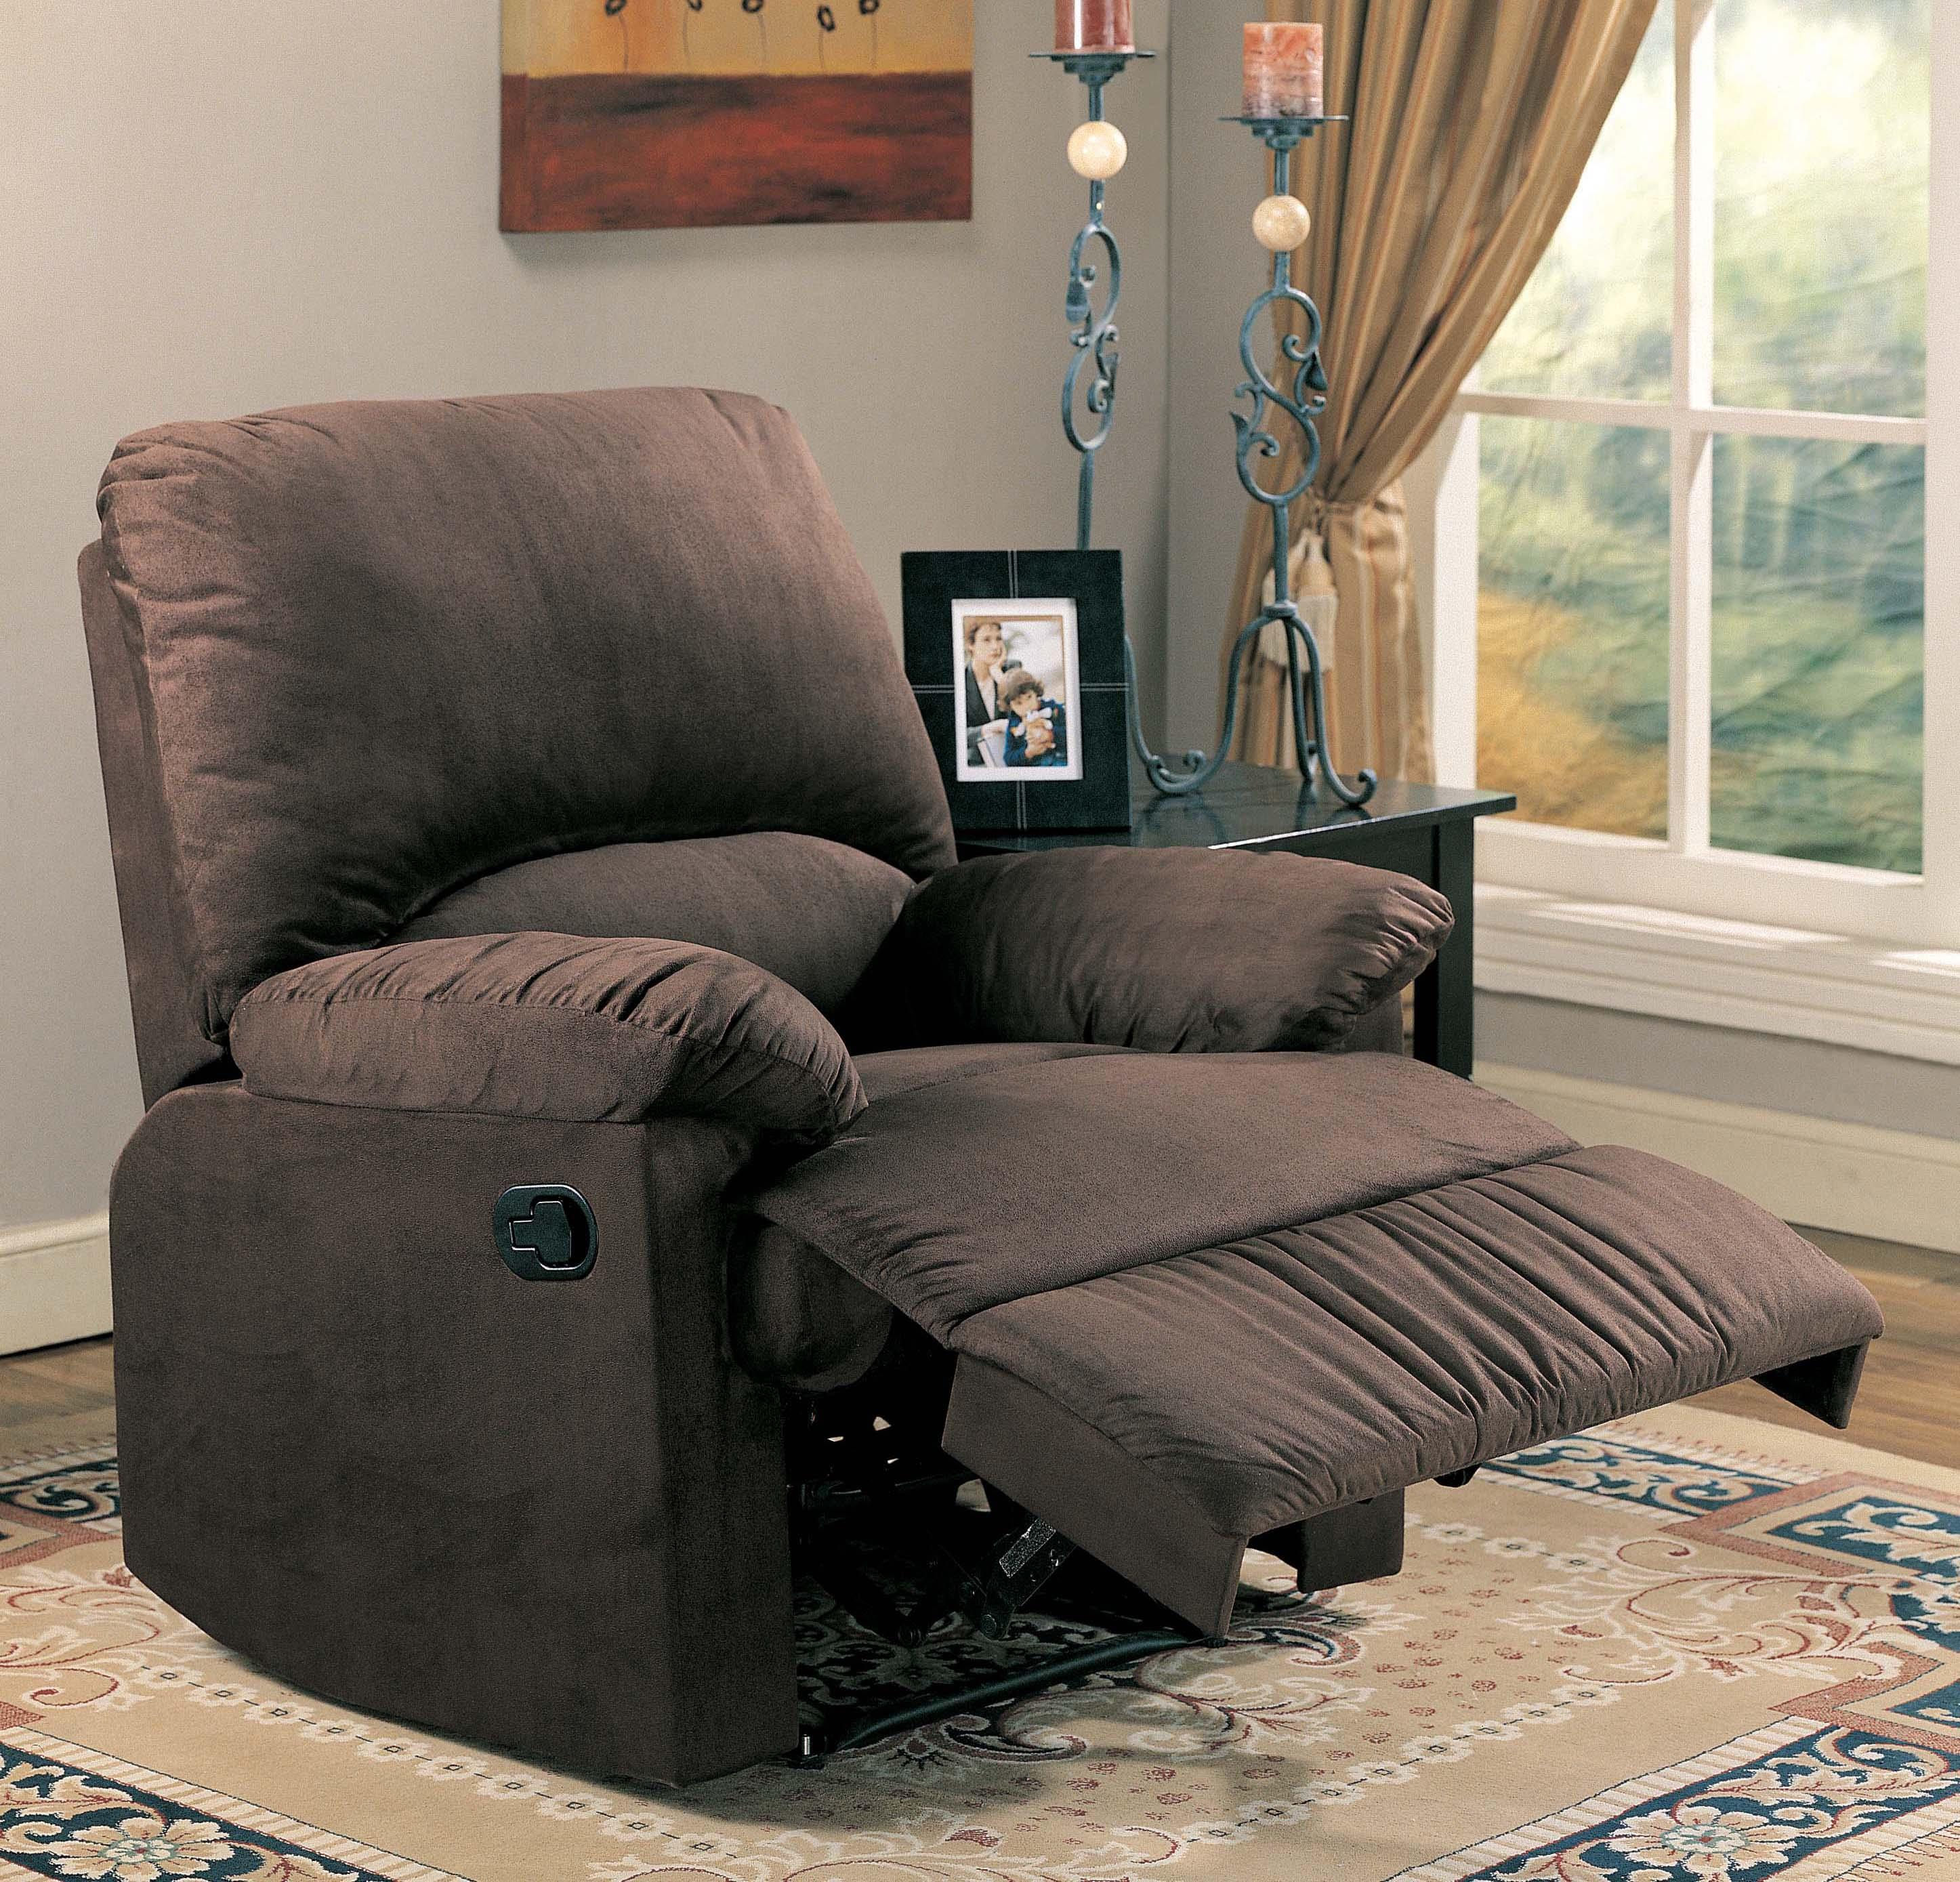 Recliners Glider Recliner by Coaster at Northeast Factory Direct